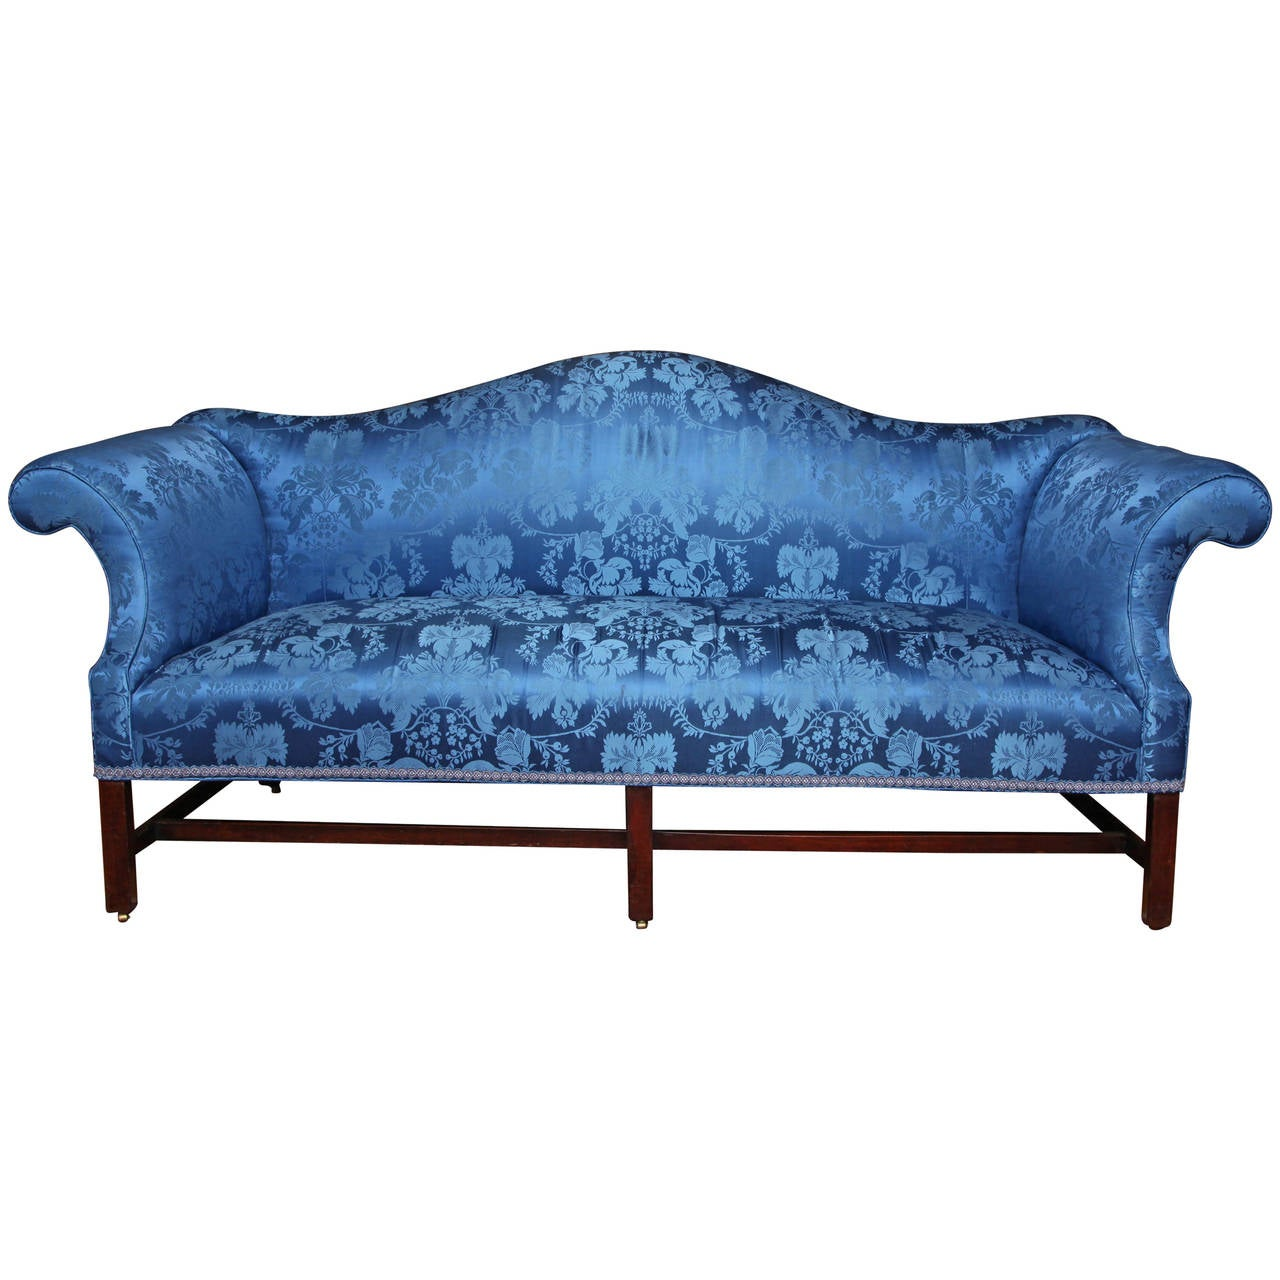 19th Century Chippendale Style Camelback Mahogany Sofa For Sale At 1stdibs